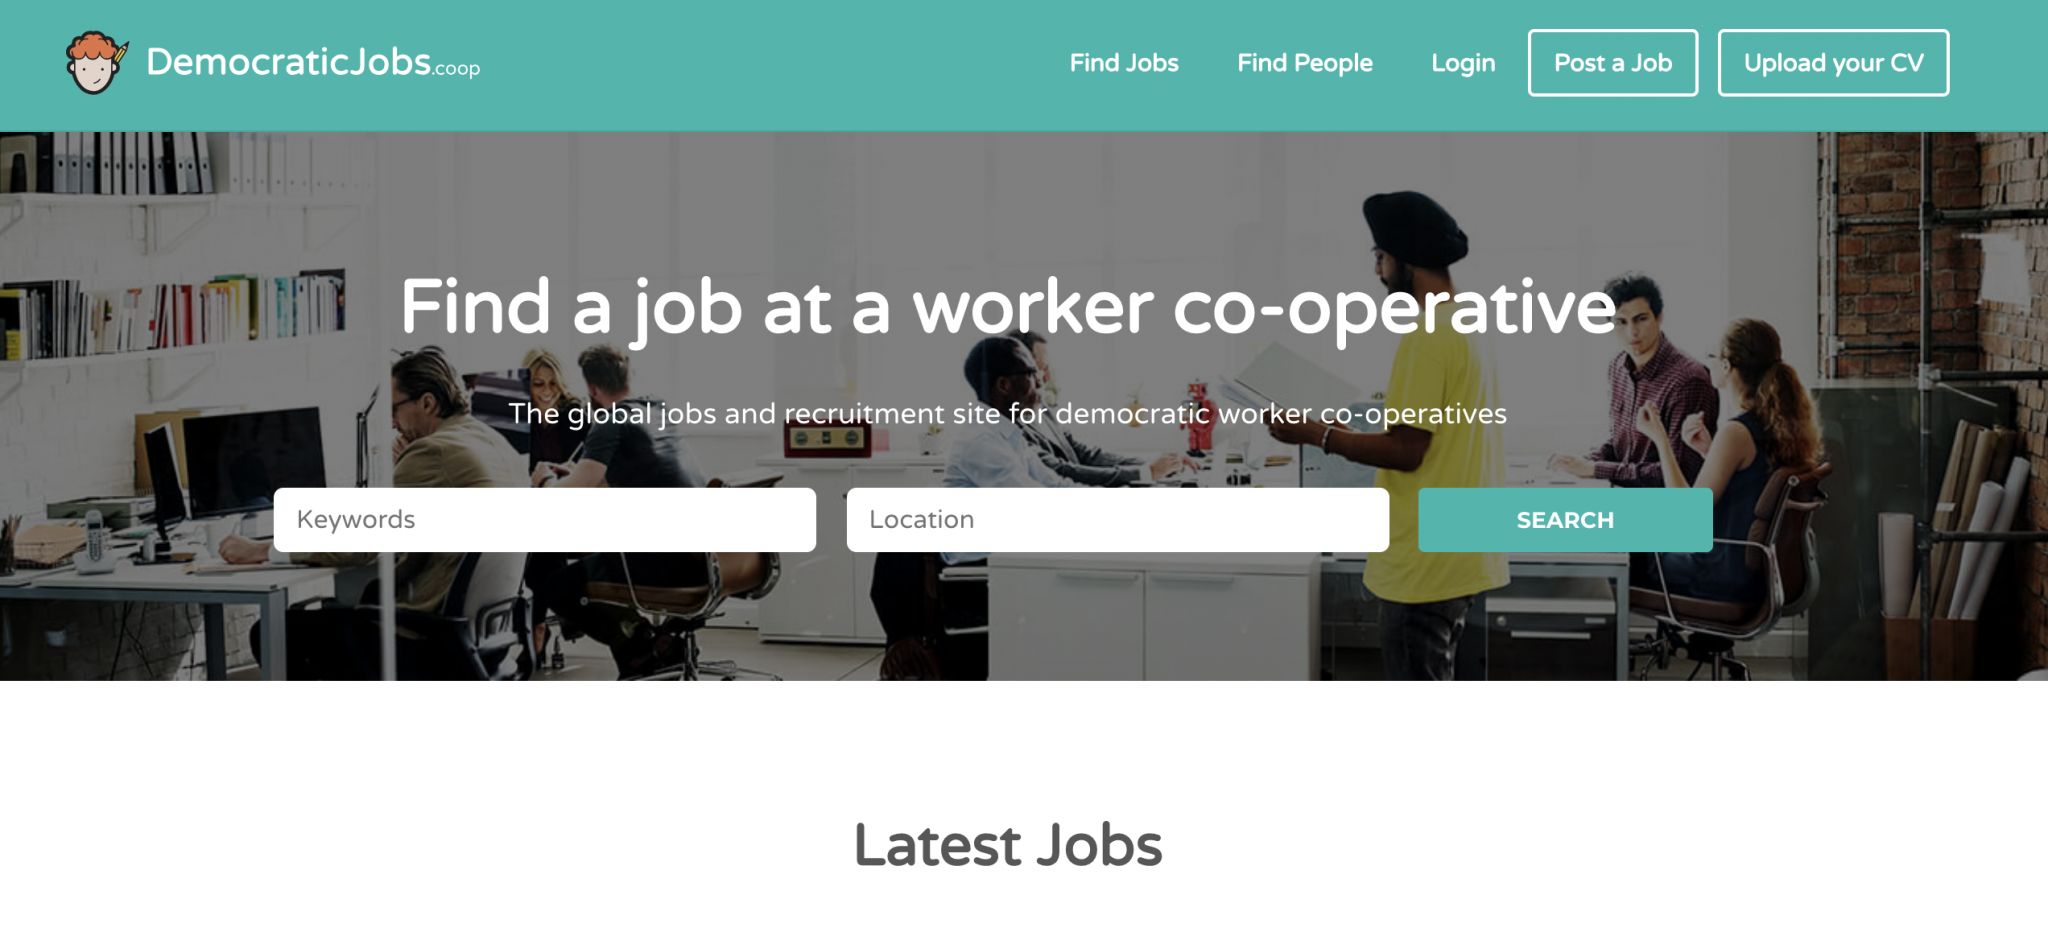 New jobs website for democratic businesses - Co-operative News